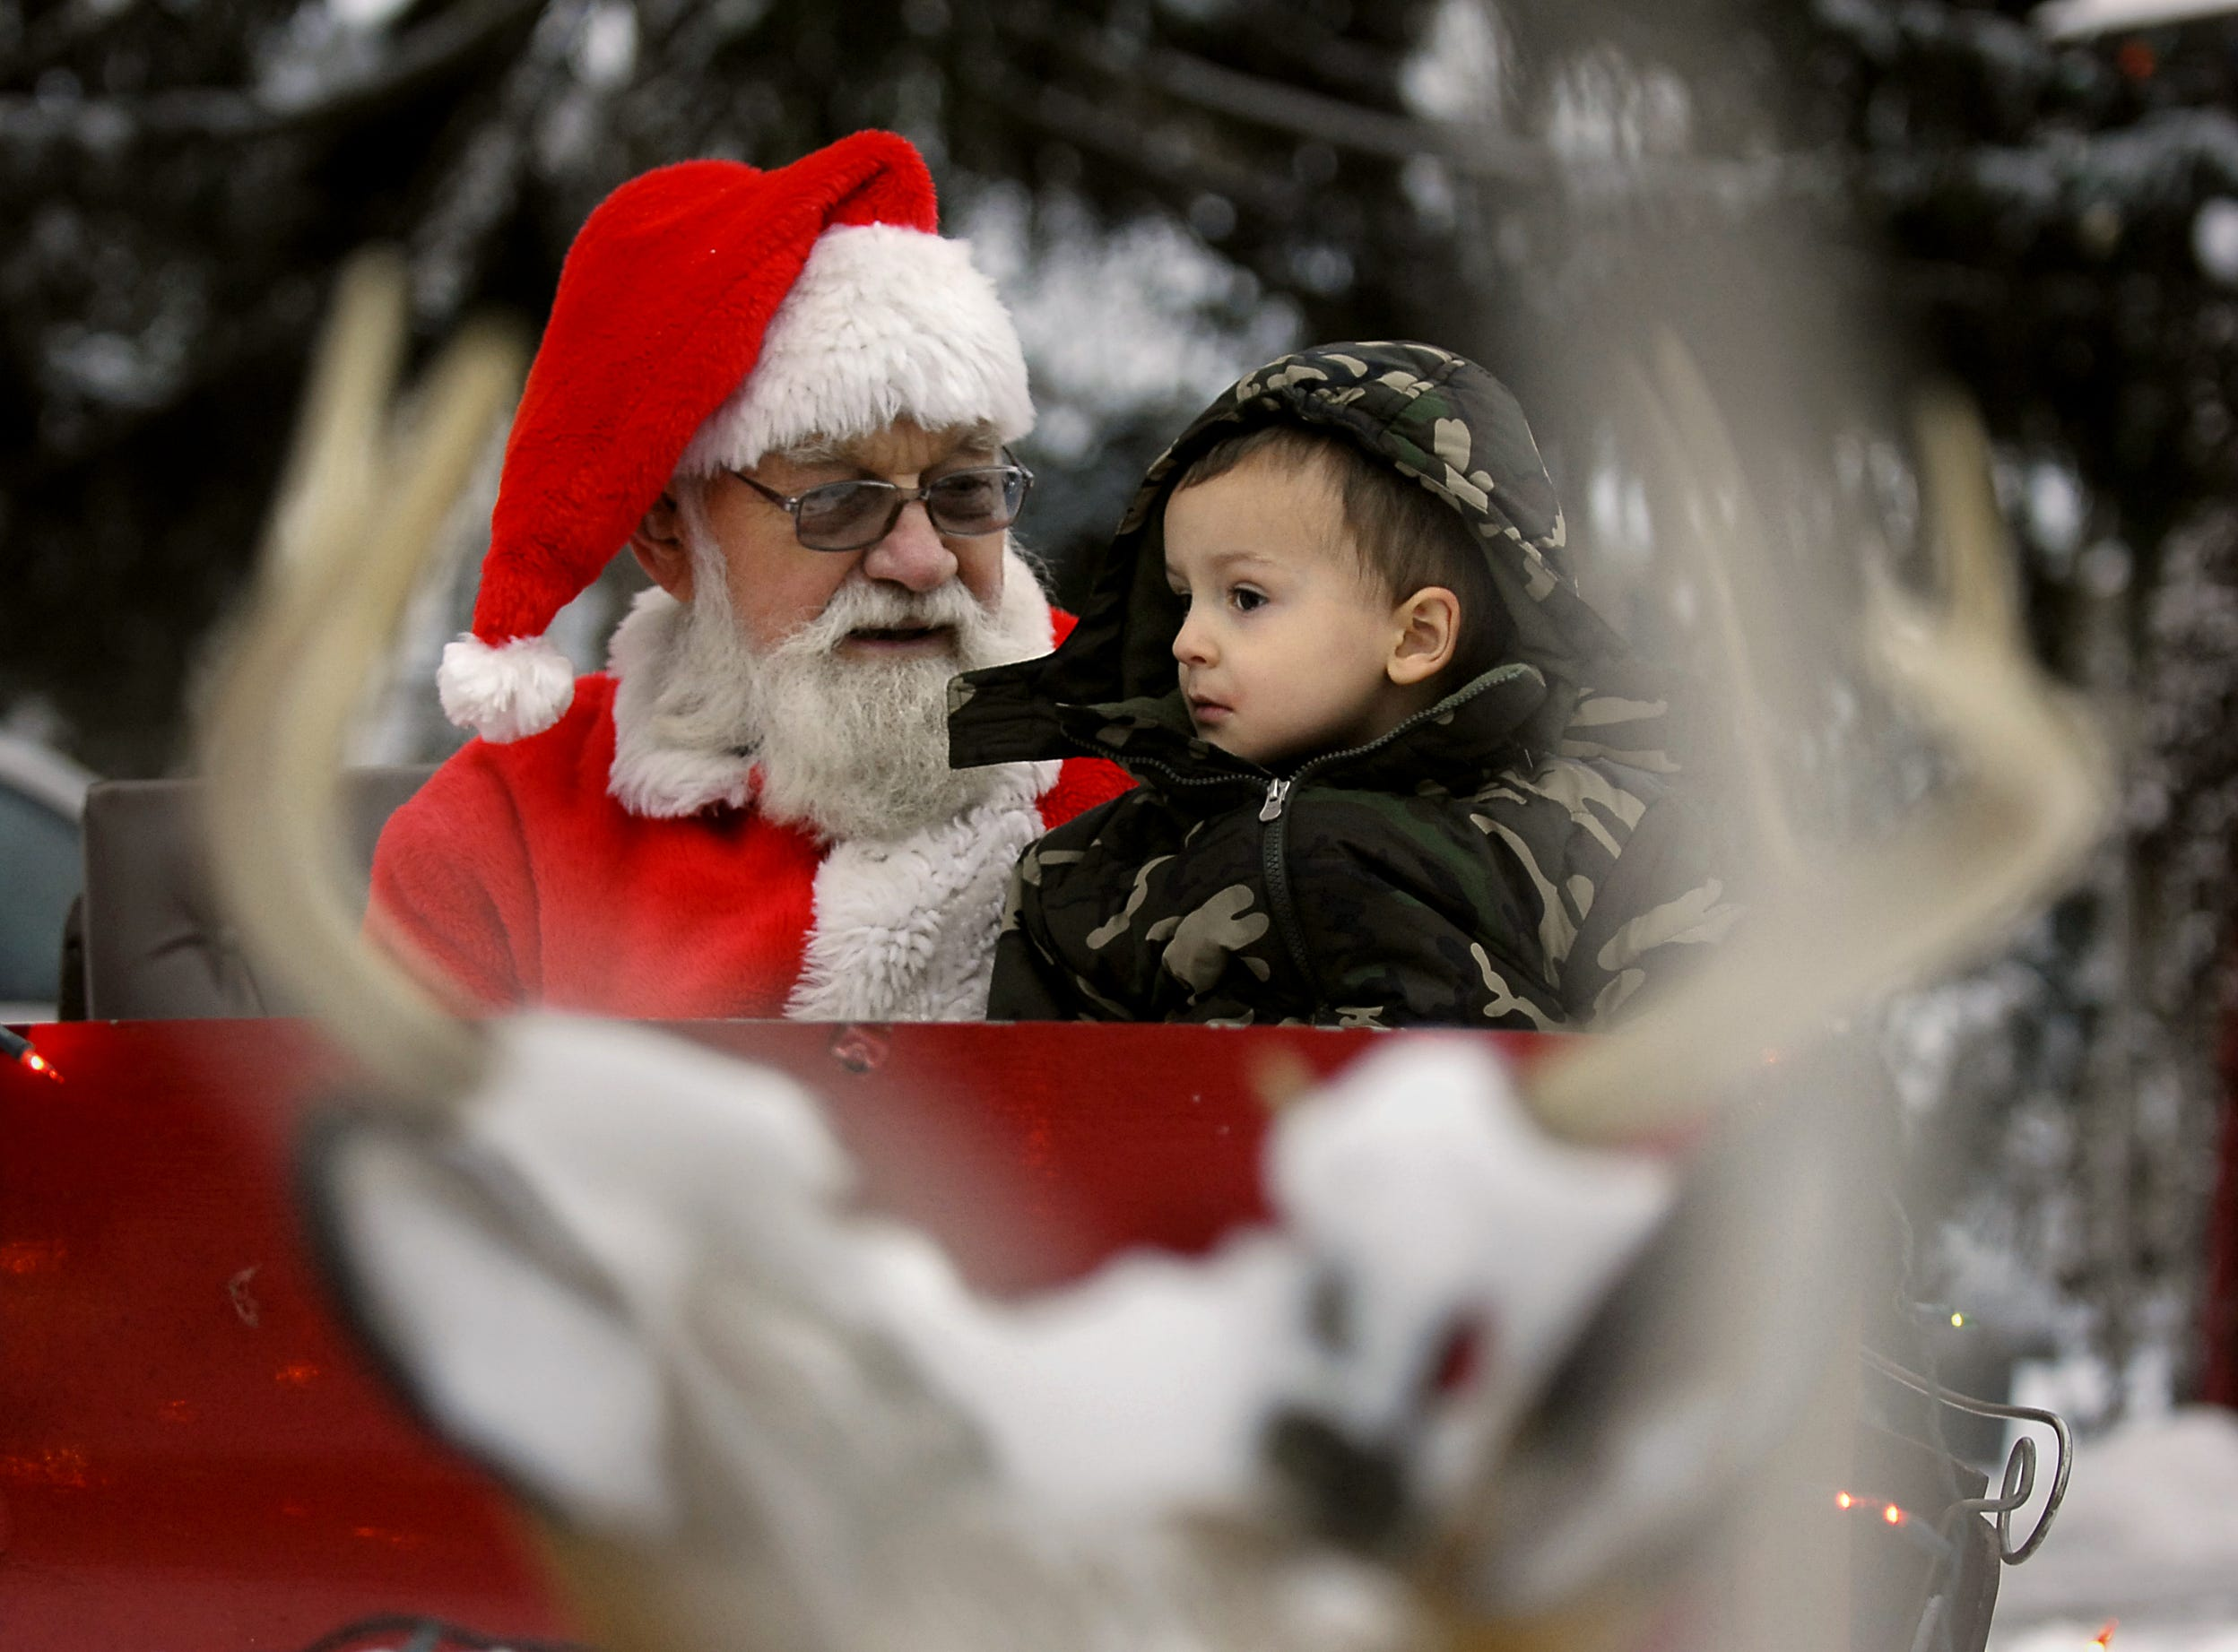 Reece Bowman, 3, tells Santa what he would like for Christmas. Emil Kletke sits out front his house in a sleigh so kids can have their photo taken with Santa Claus, Dec. 17, 2008.